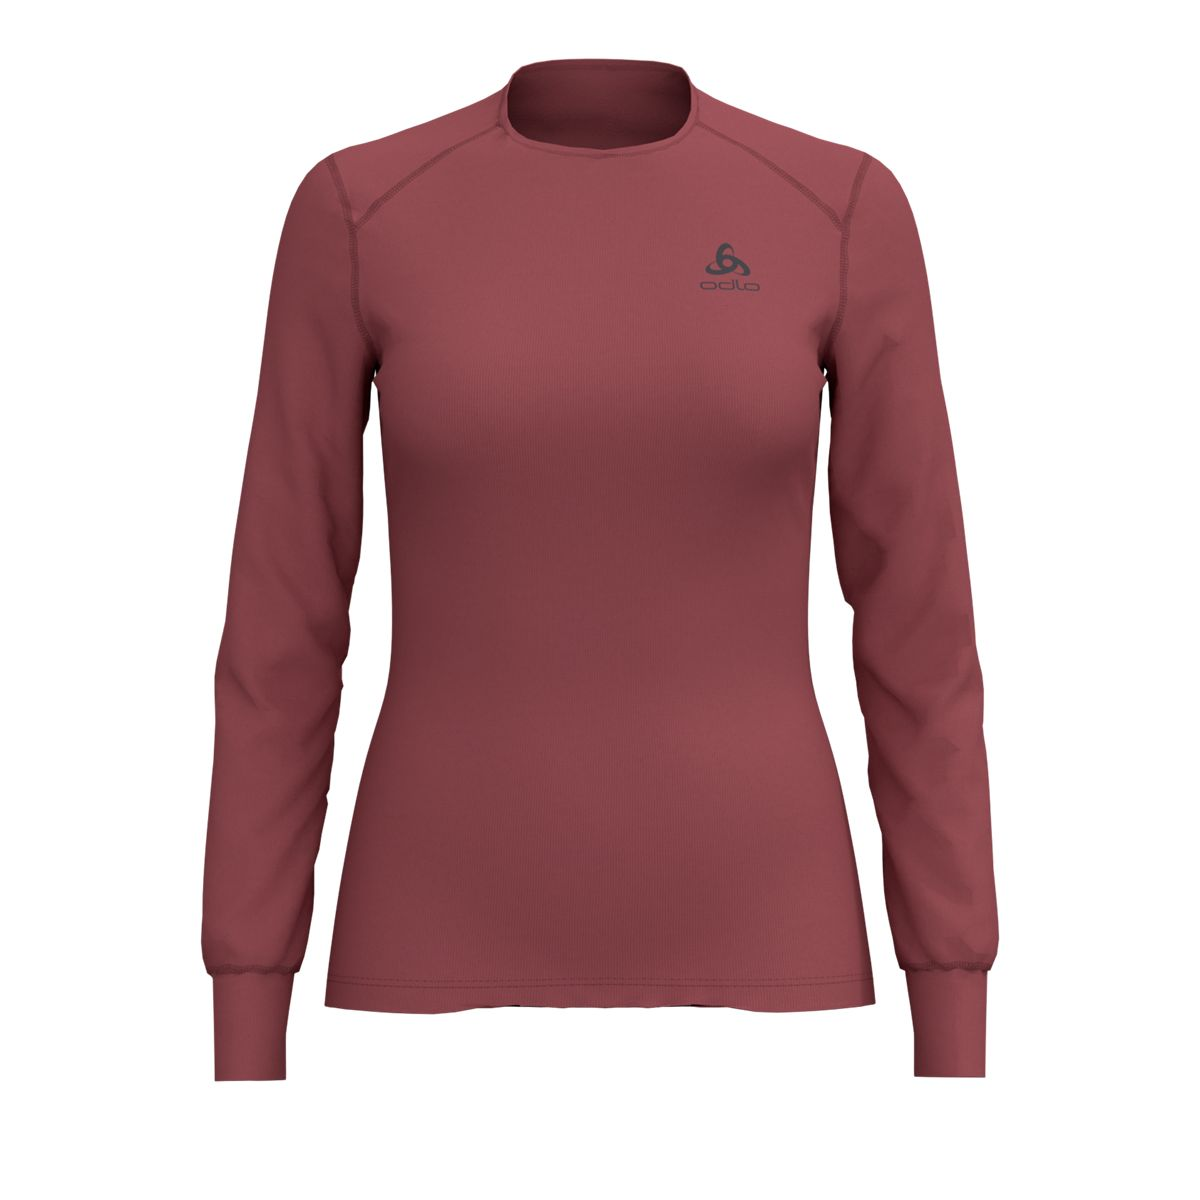 WARM Shirt L/S Crew Neck Women